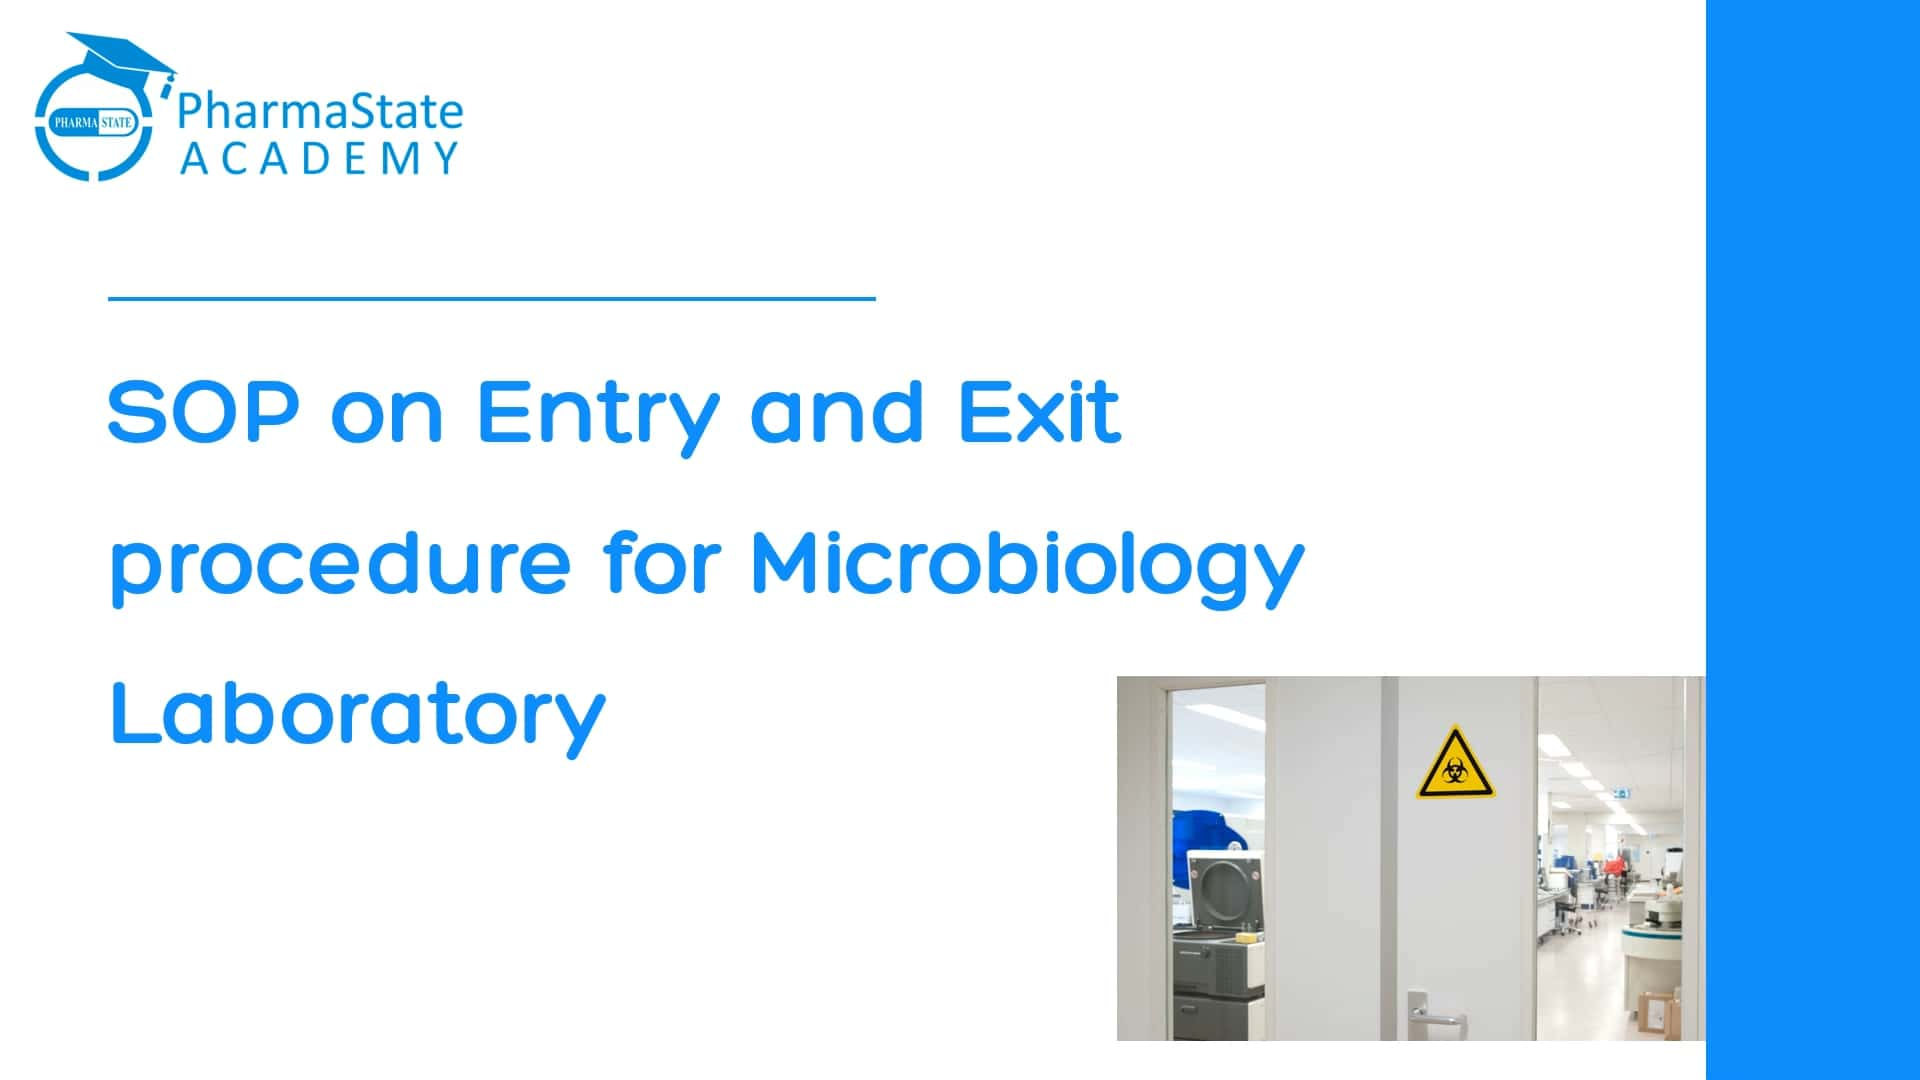 SOP on Entry and Exit procedure for Microbiology Laboratory